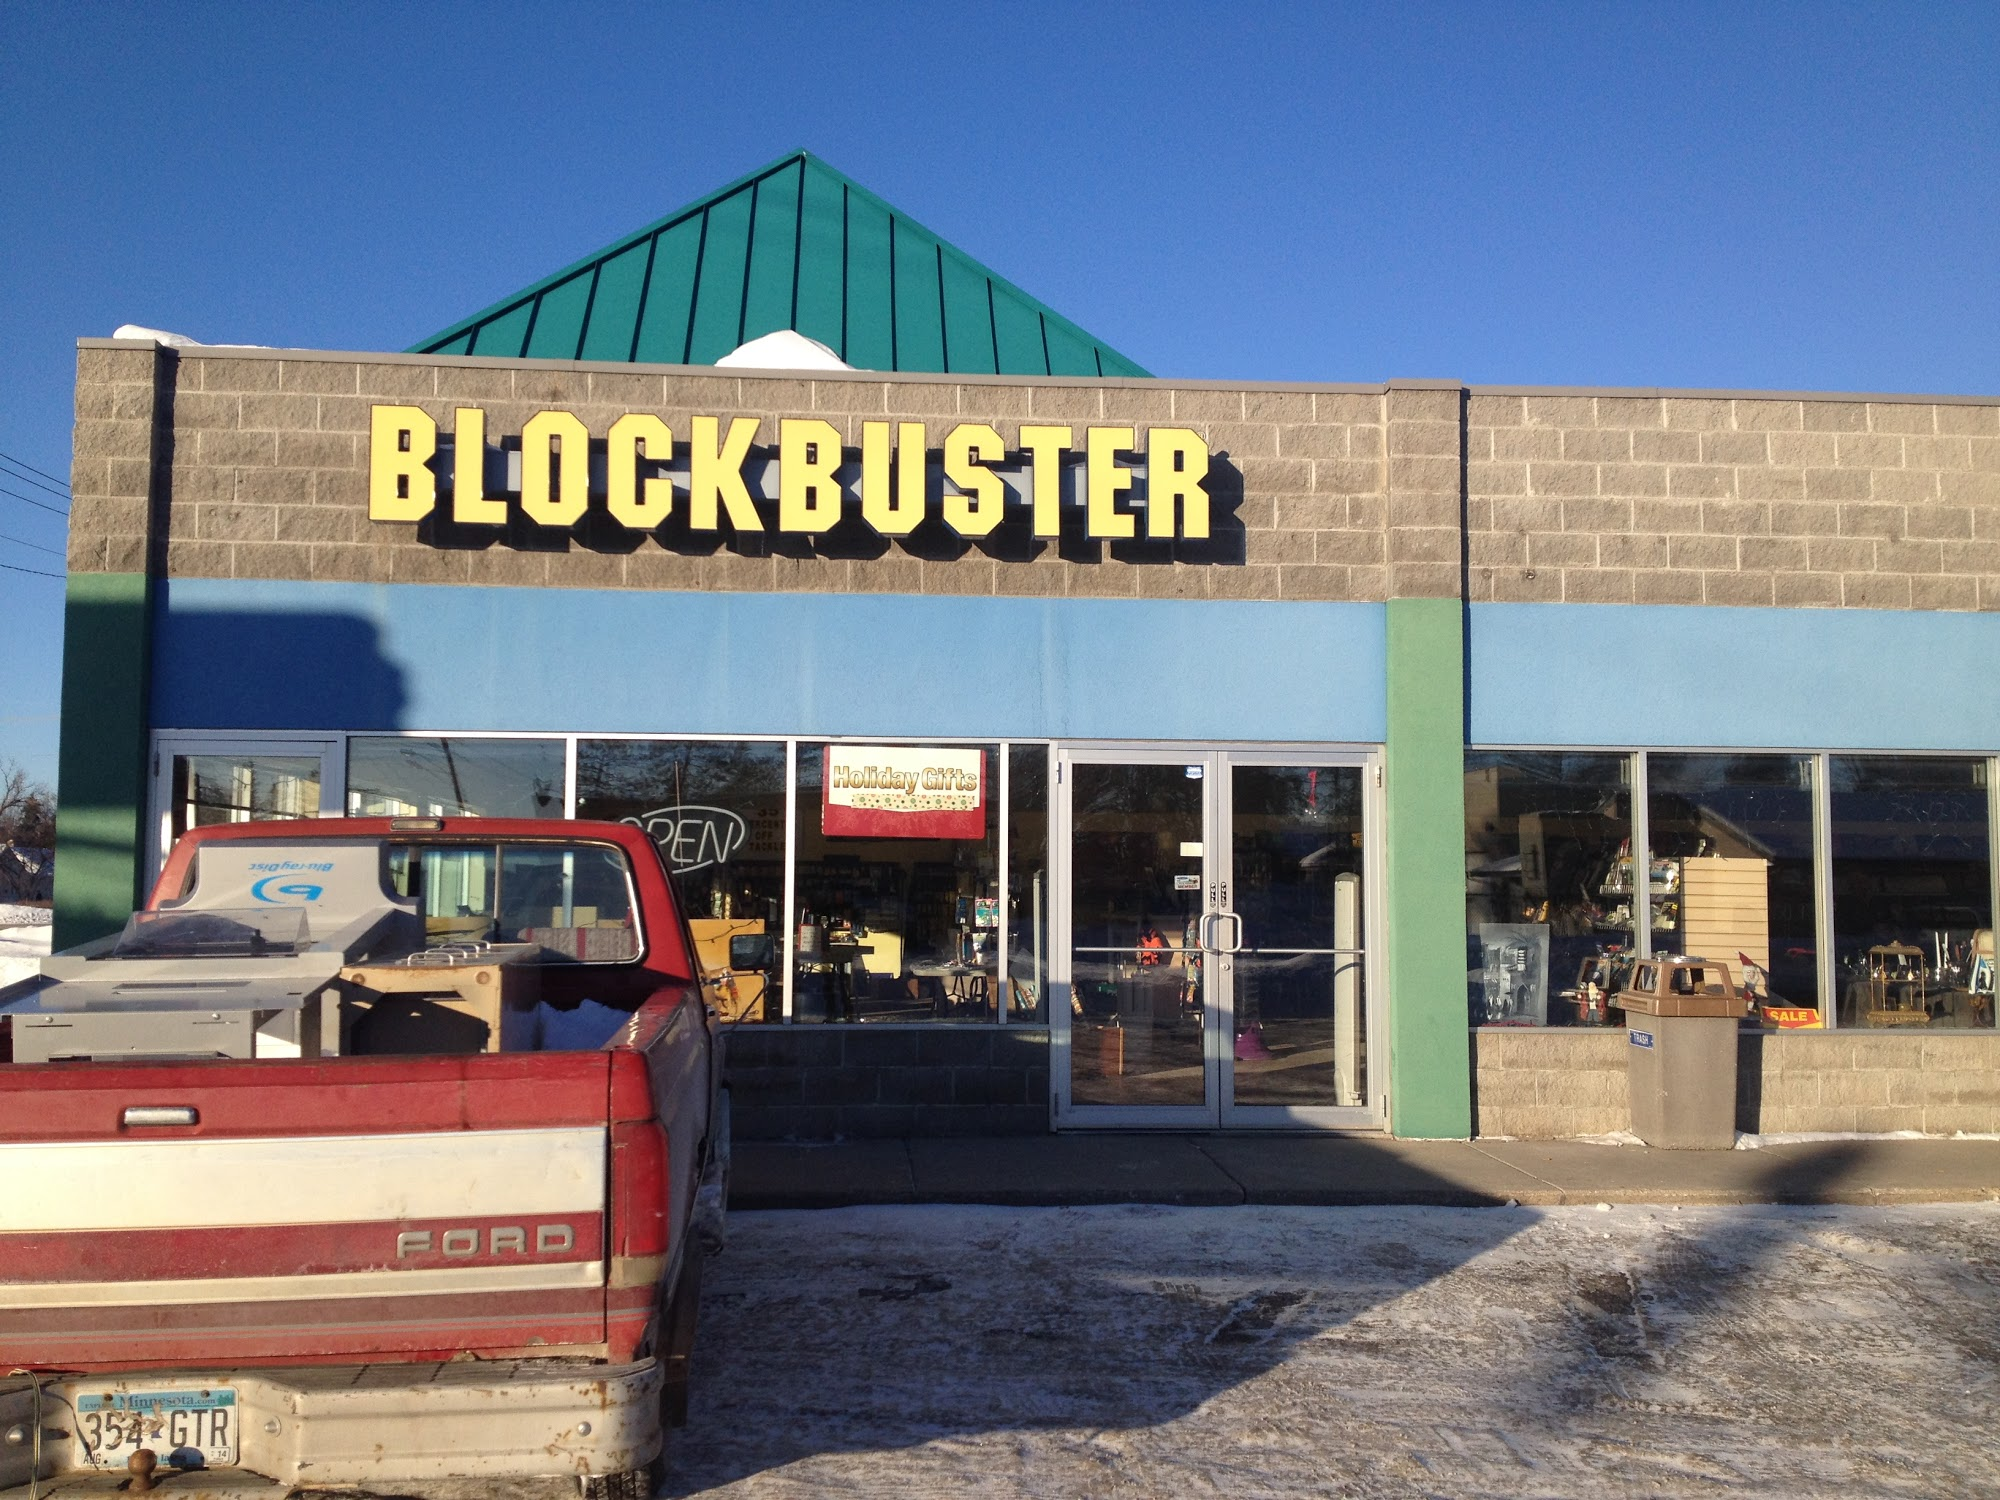 Blockbuster Video in Bemidji, Minnesota (Credit: All photos by author)